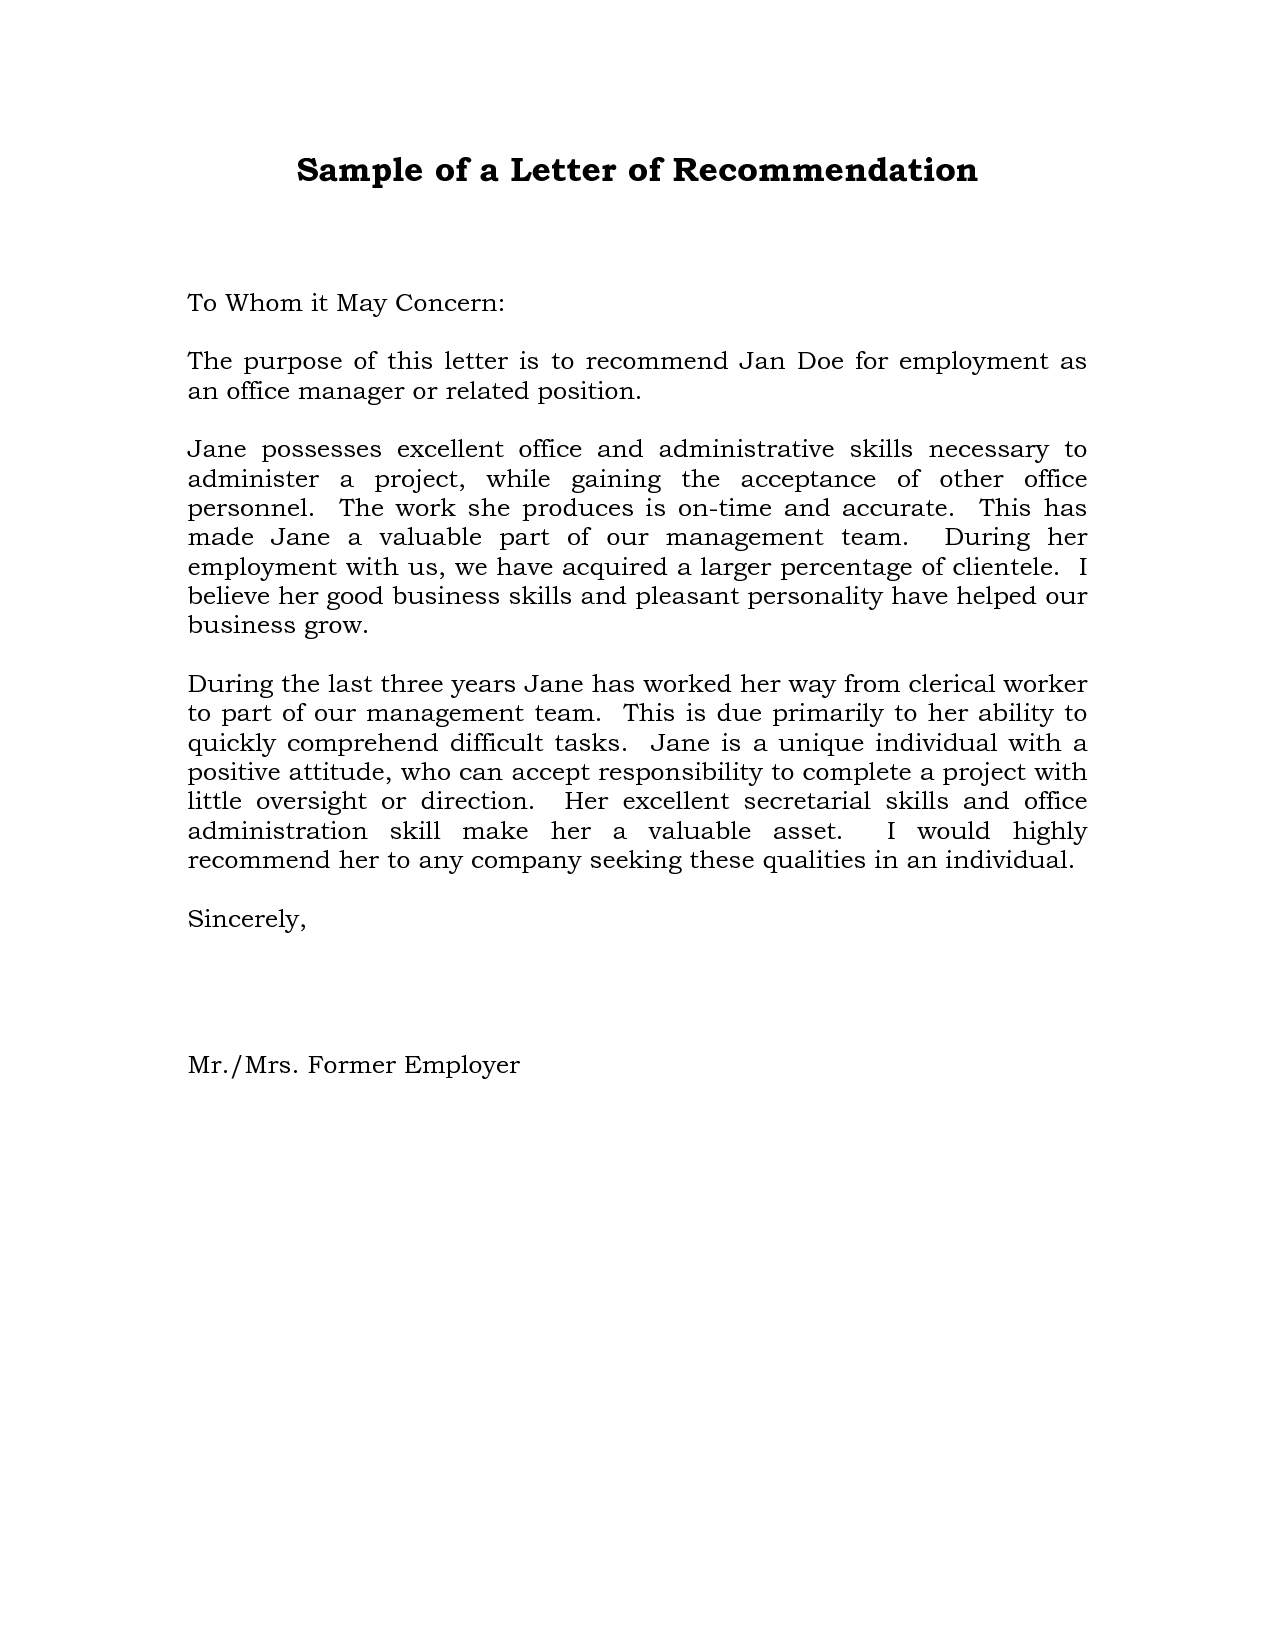 job reference letter samples – Template Letter of Recommendation for Employment